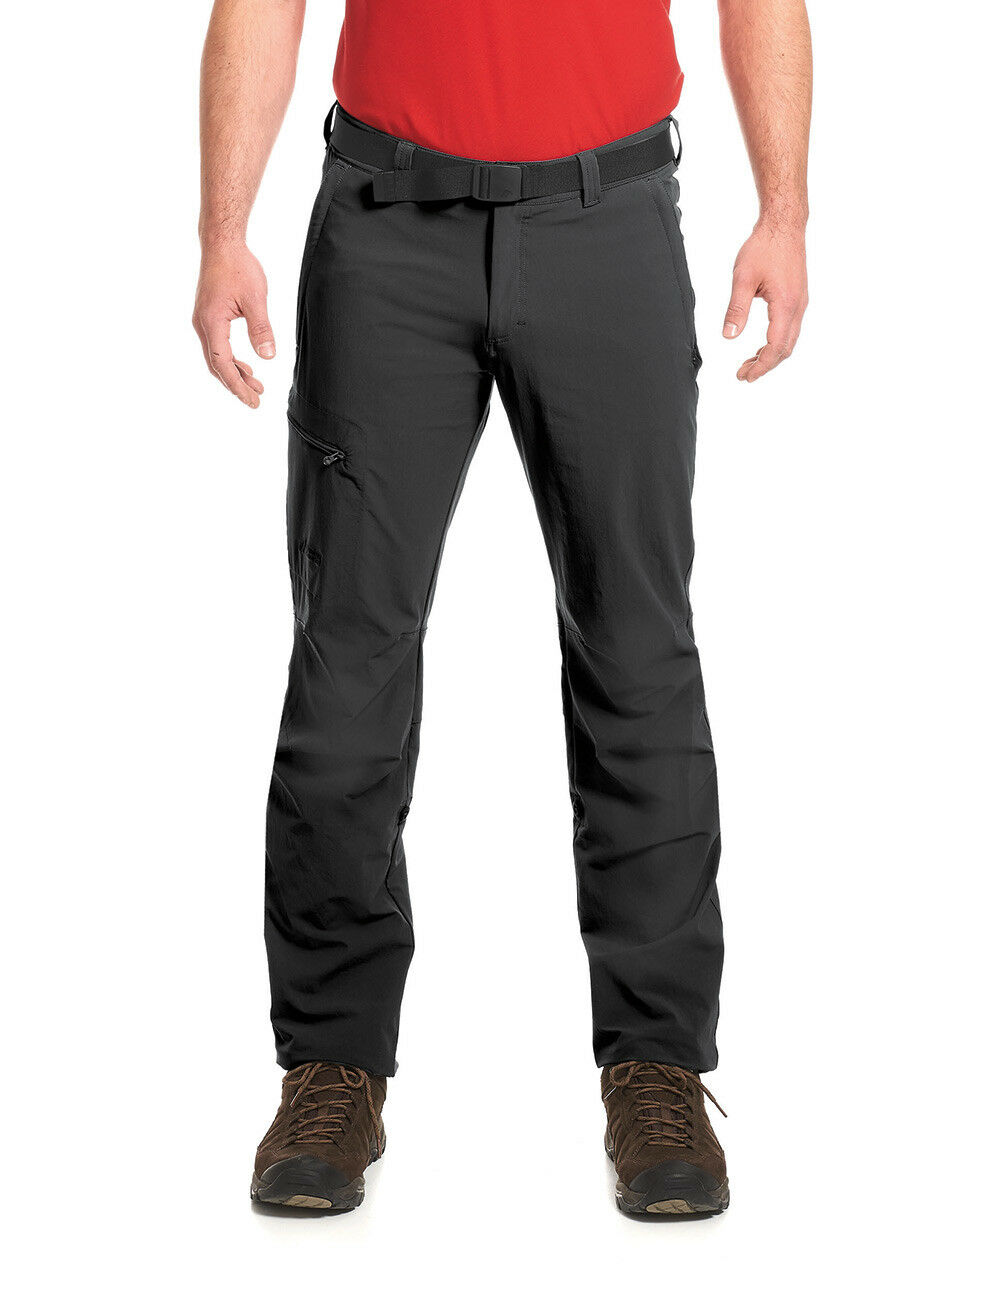 Maier Sports Herren Wanderhose NIL mit Roll-up-Bein 132001 schwarz / Outdoor Hos